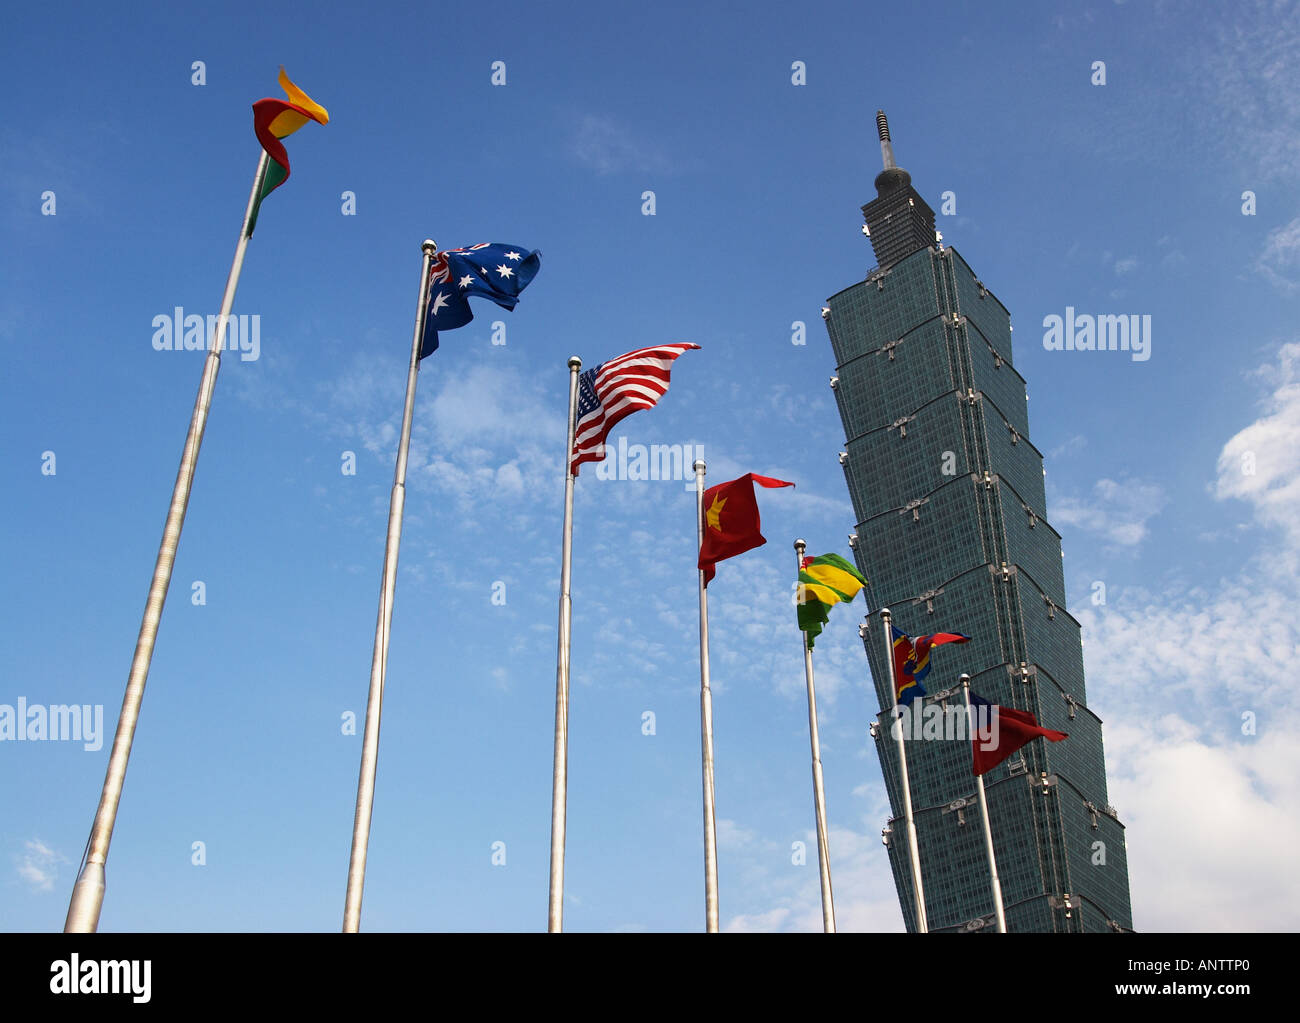 Flags Flying Outside World's Former Tallest Building, Taipei 101 Stock Photo